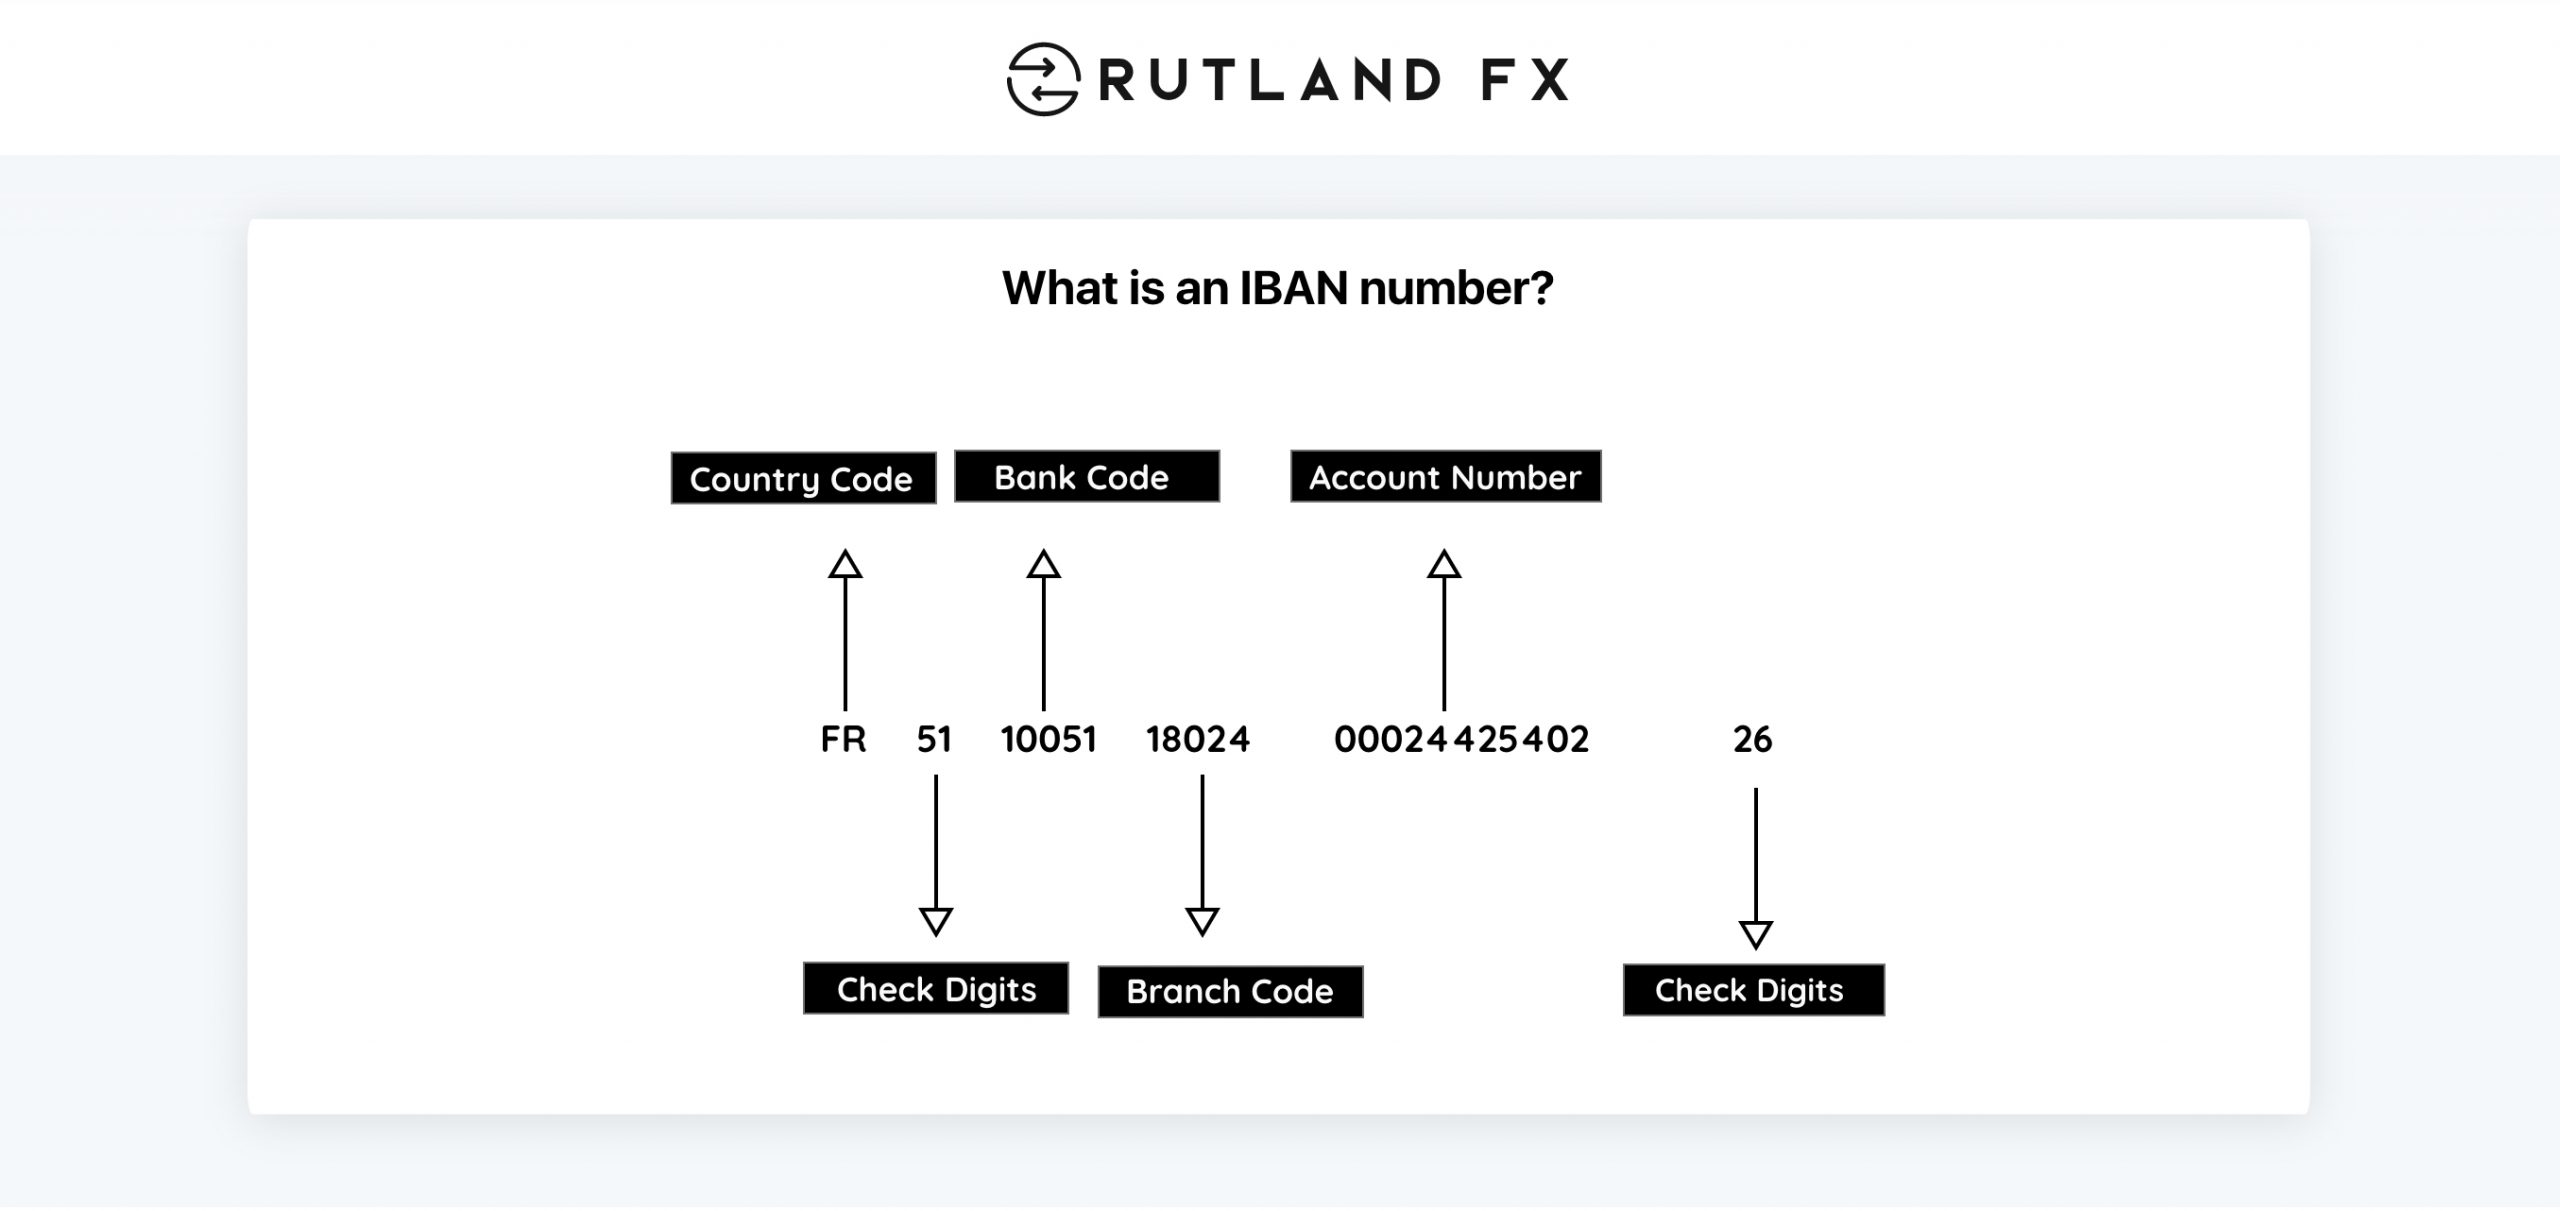 What is an IBAN number? An infographic of IBAN for Rutland FX